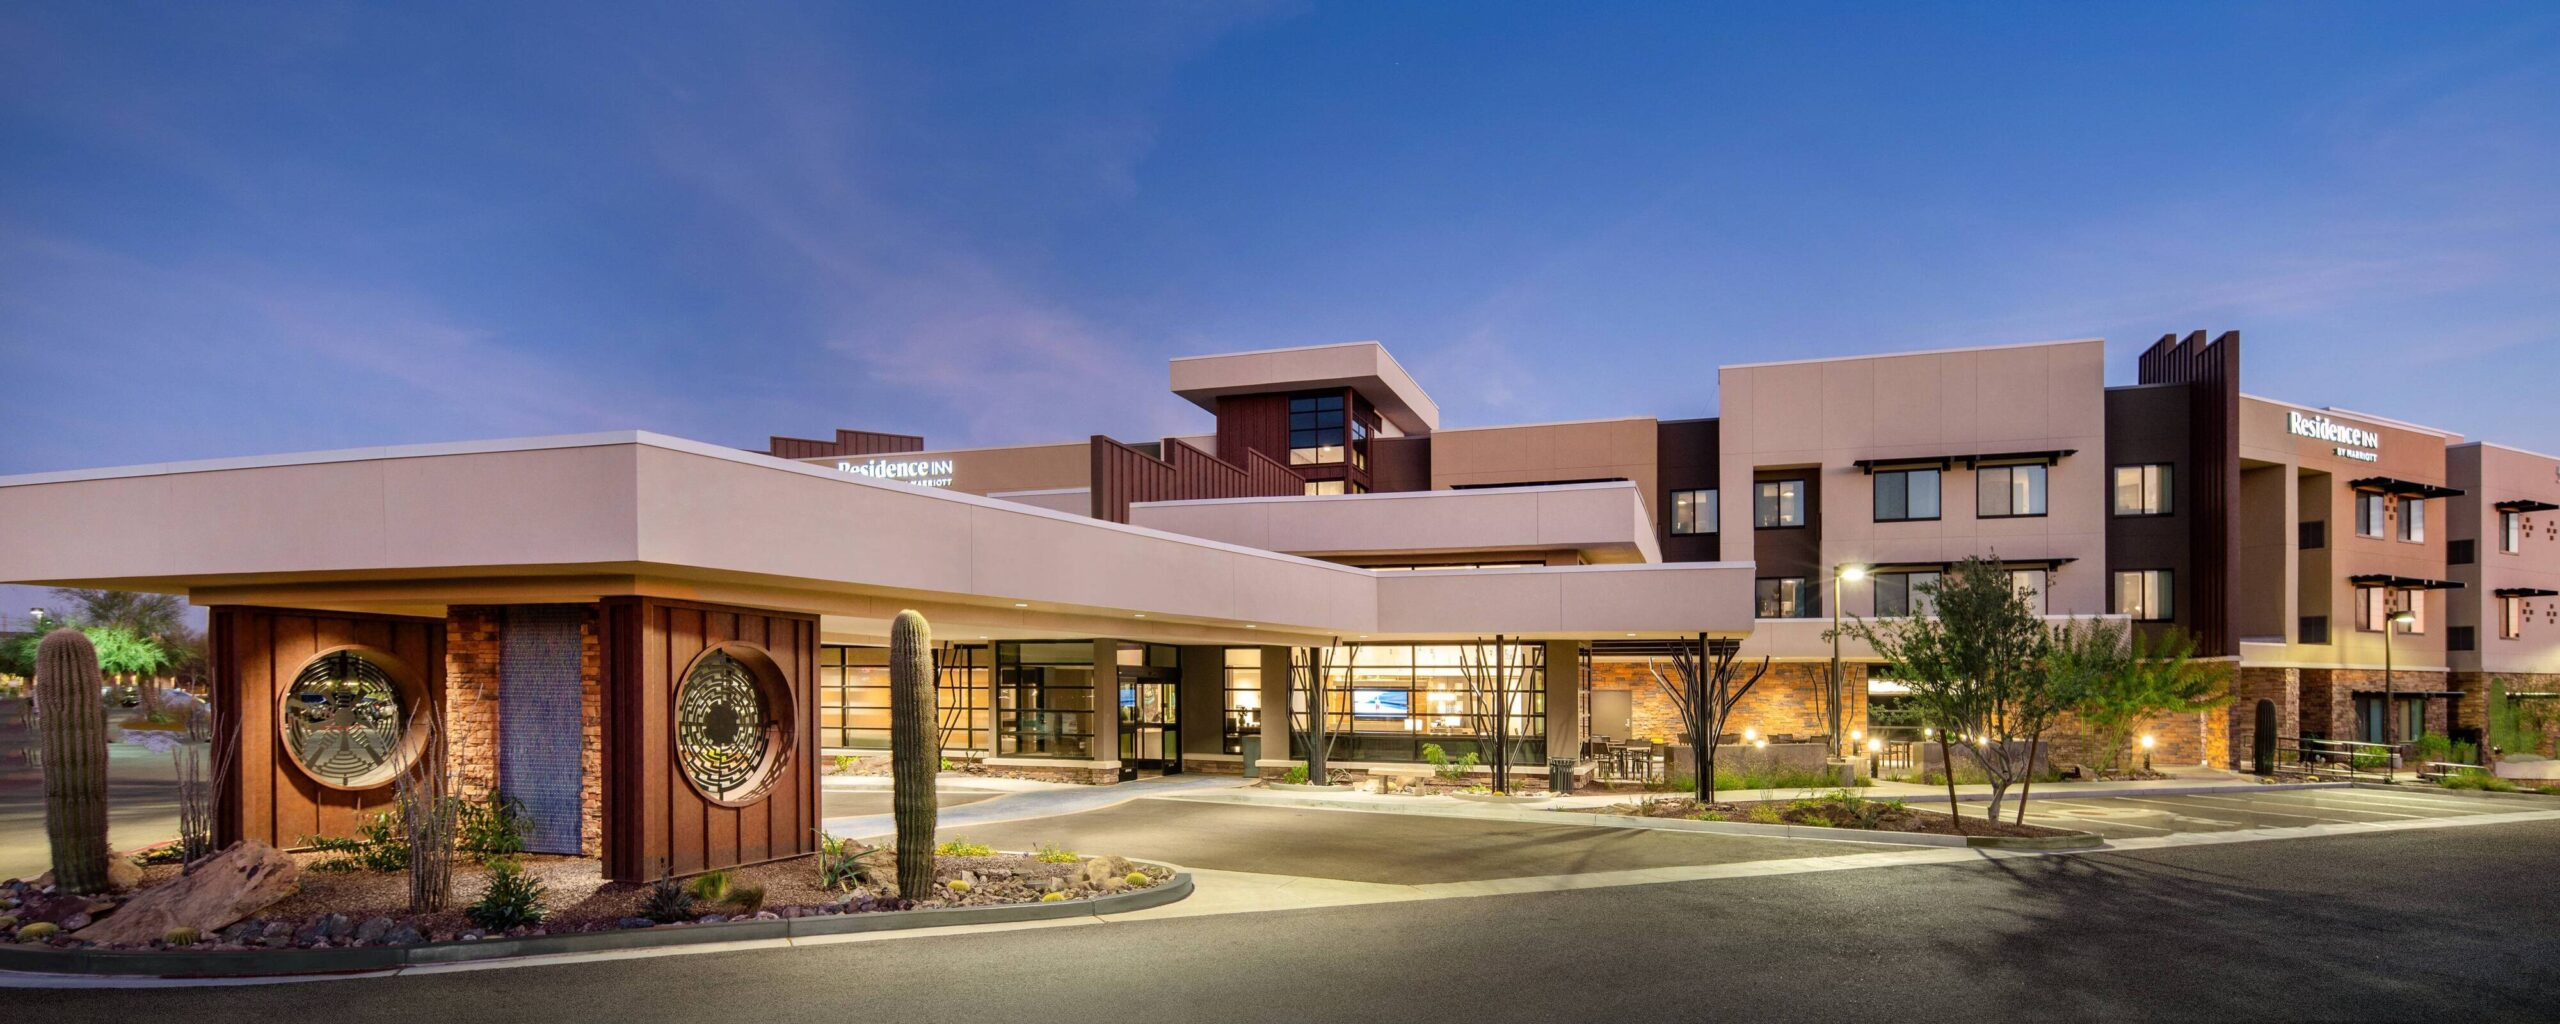 Residence Inn by Marriott Scottsdale Salt River – Scottsdale, AZ